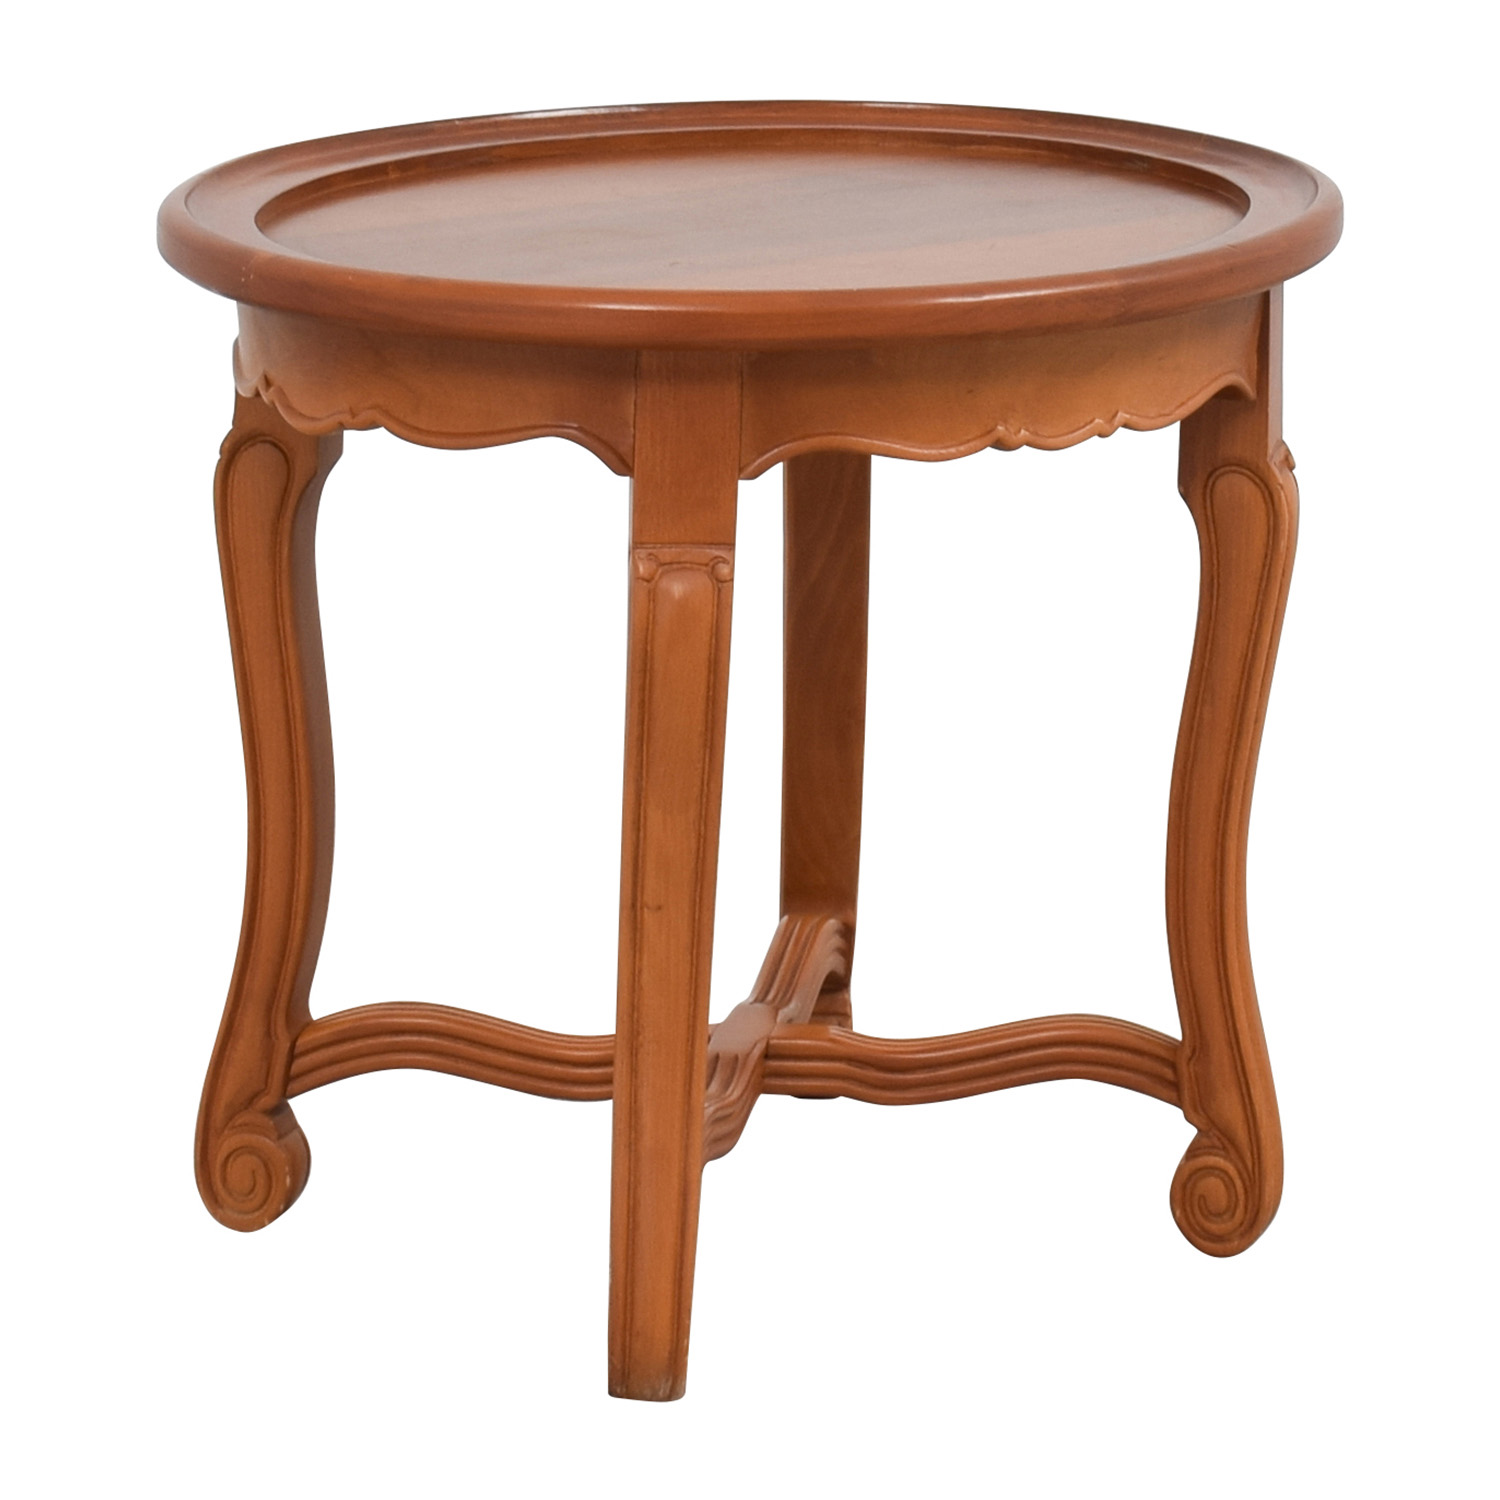 Buy Side Table 90 Off Round Antique Wood Side Table Tables